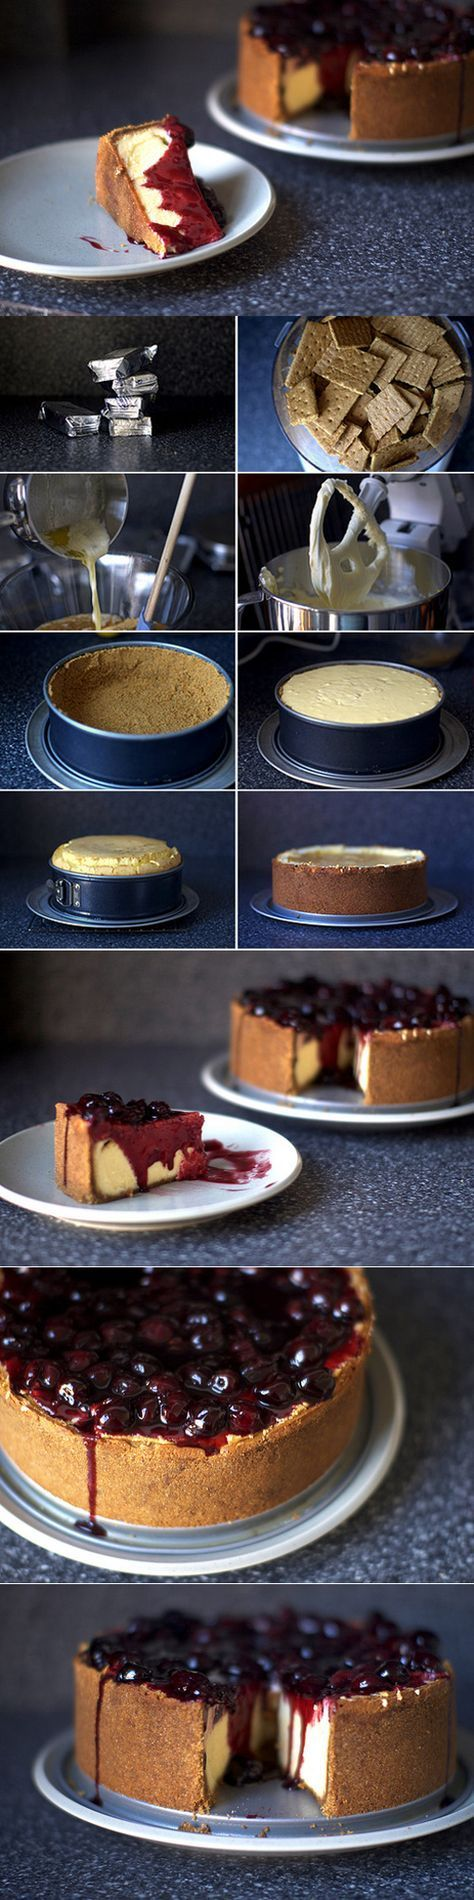 Una receta increible del New York Cheesecake / http://smittenkitchen.com/